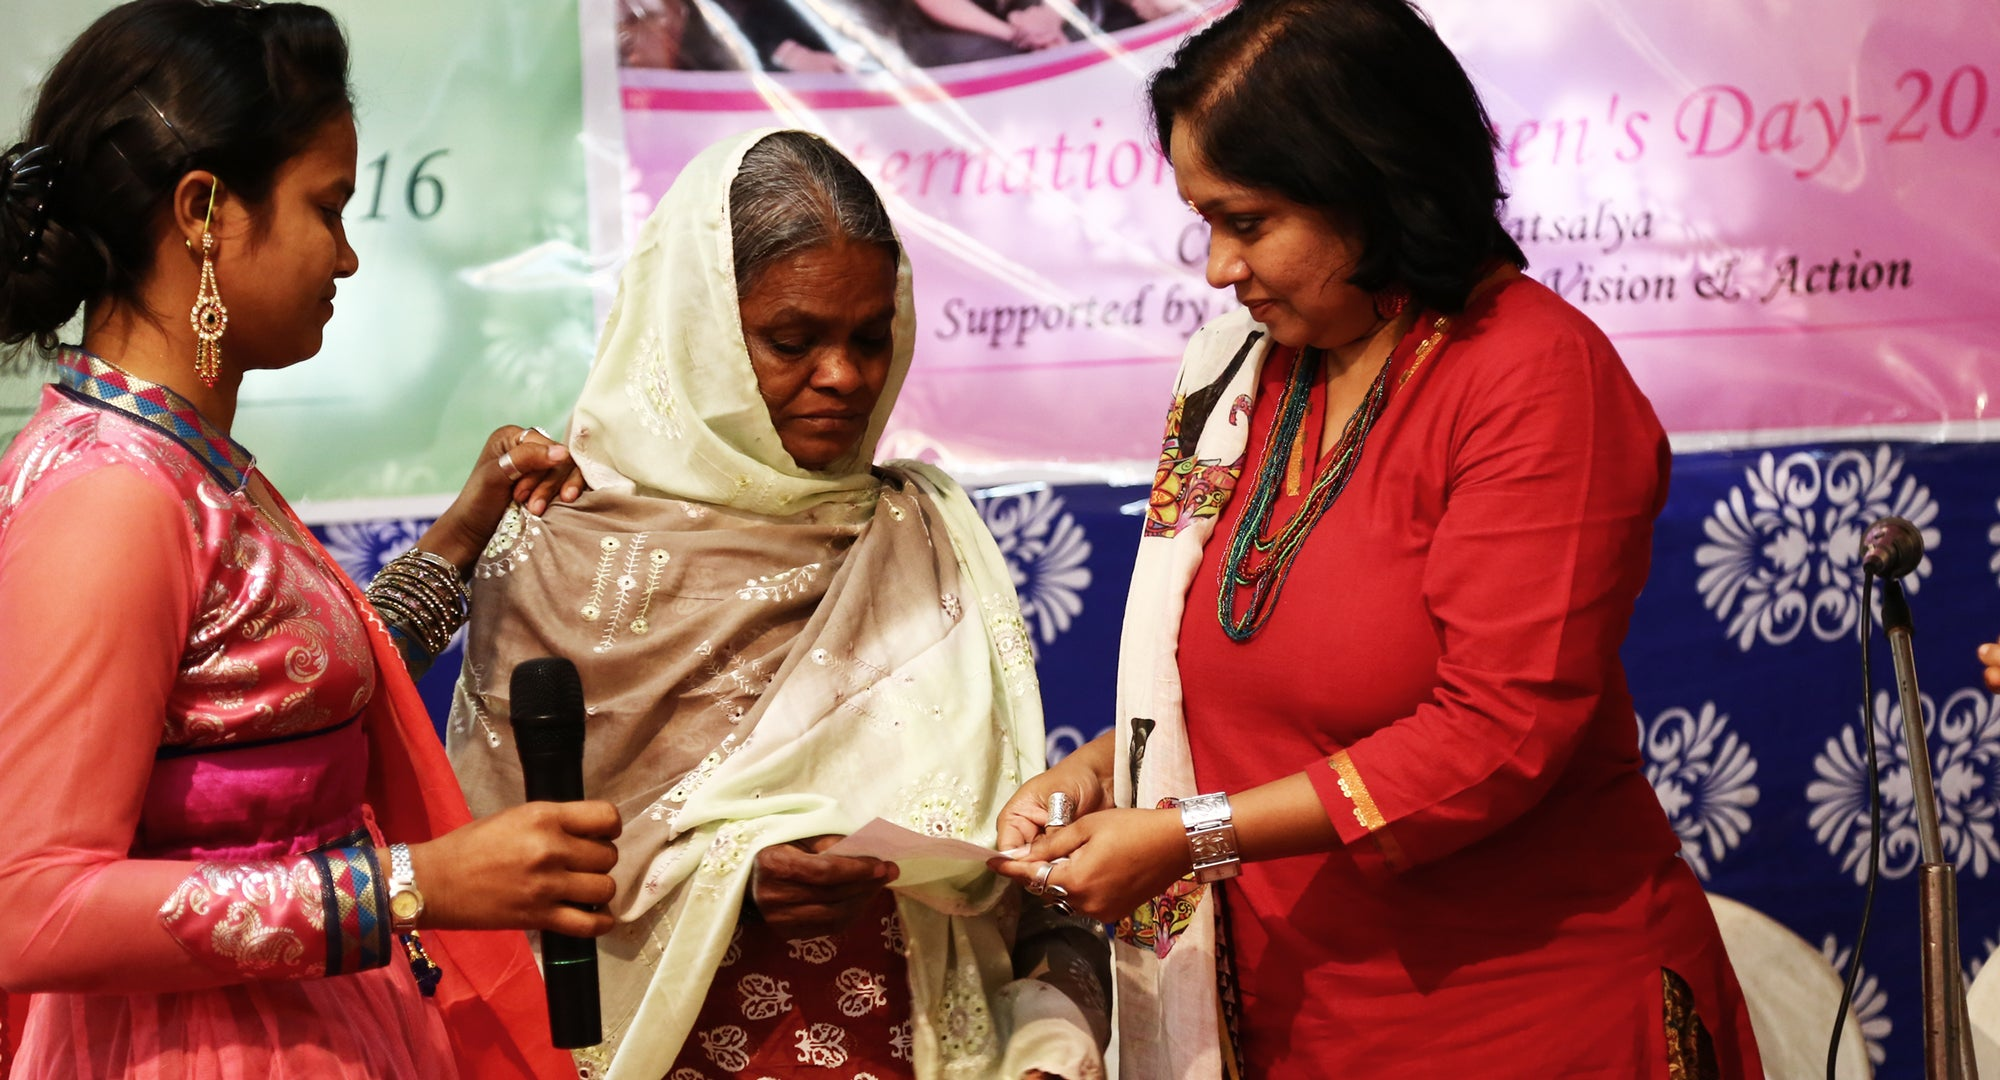 Nazia and mother accepting International Women's Day award